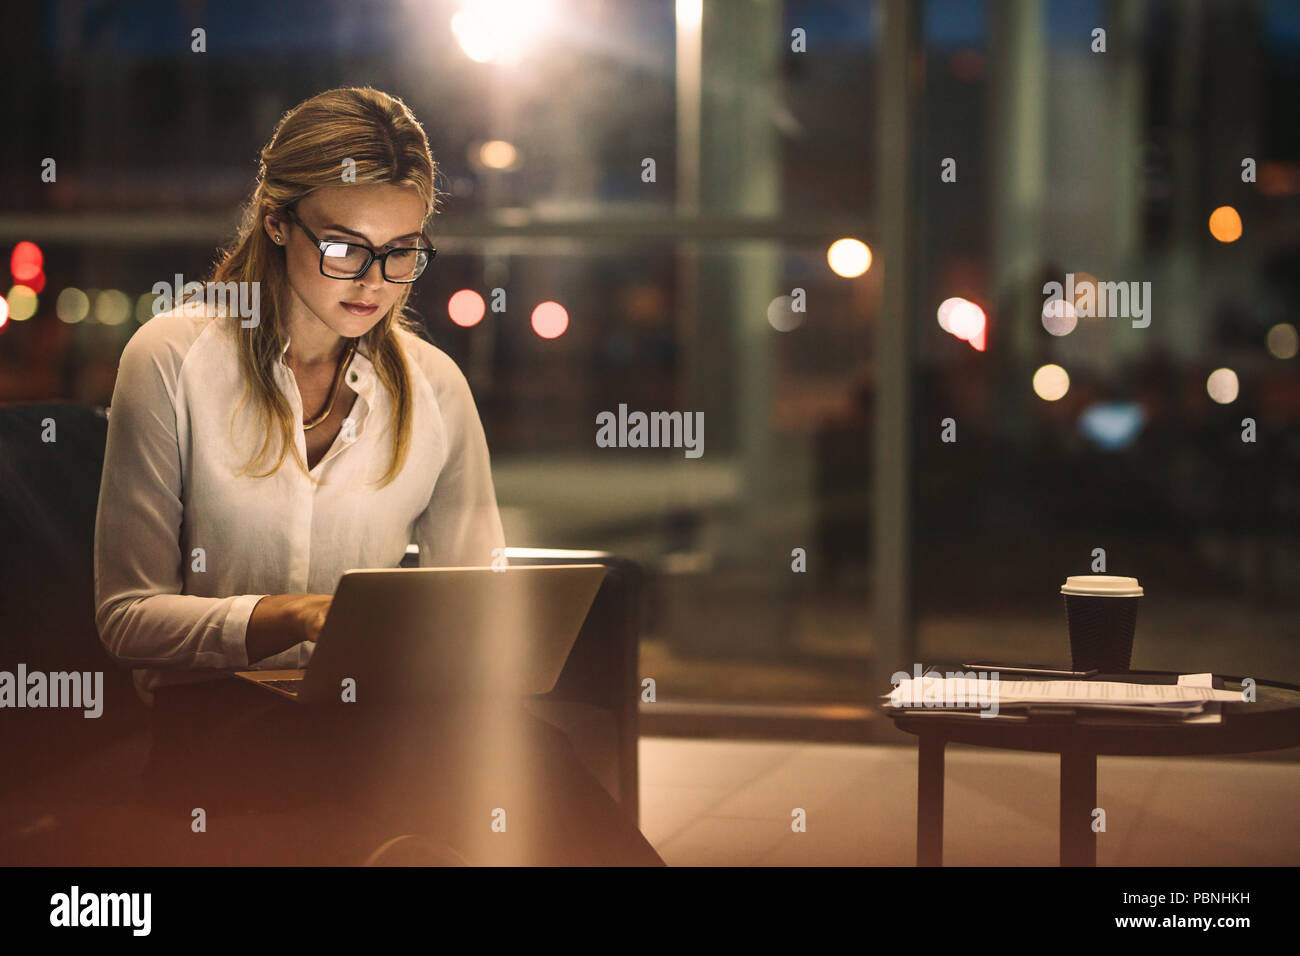 Young woman working on the laptop late at night. Caucasian businesswoman working overtime in the office to finish the project within the deadline. - Stock Image